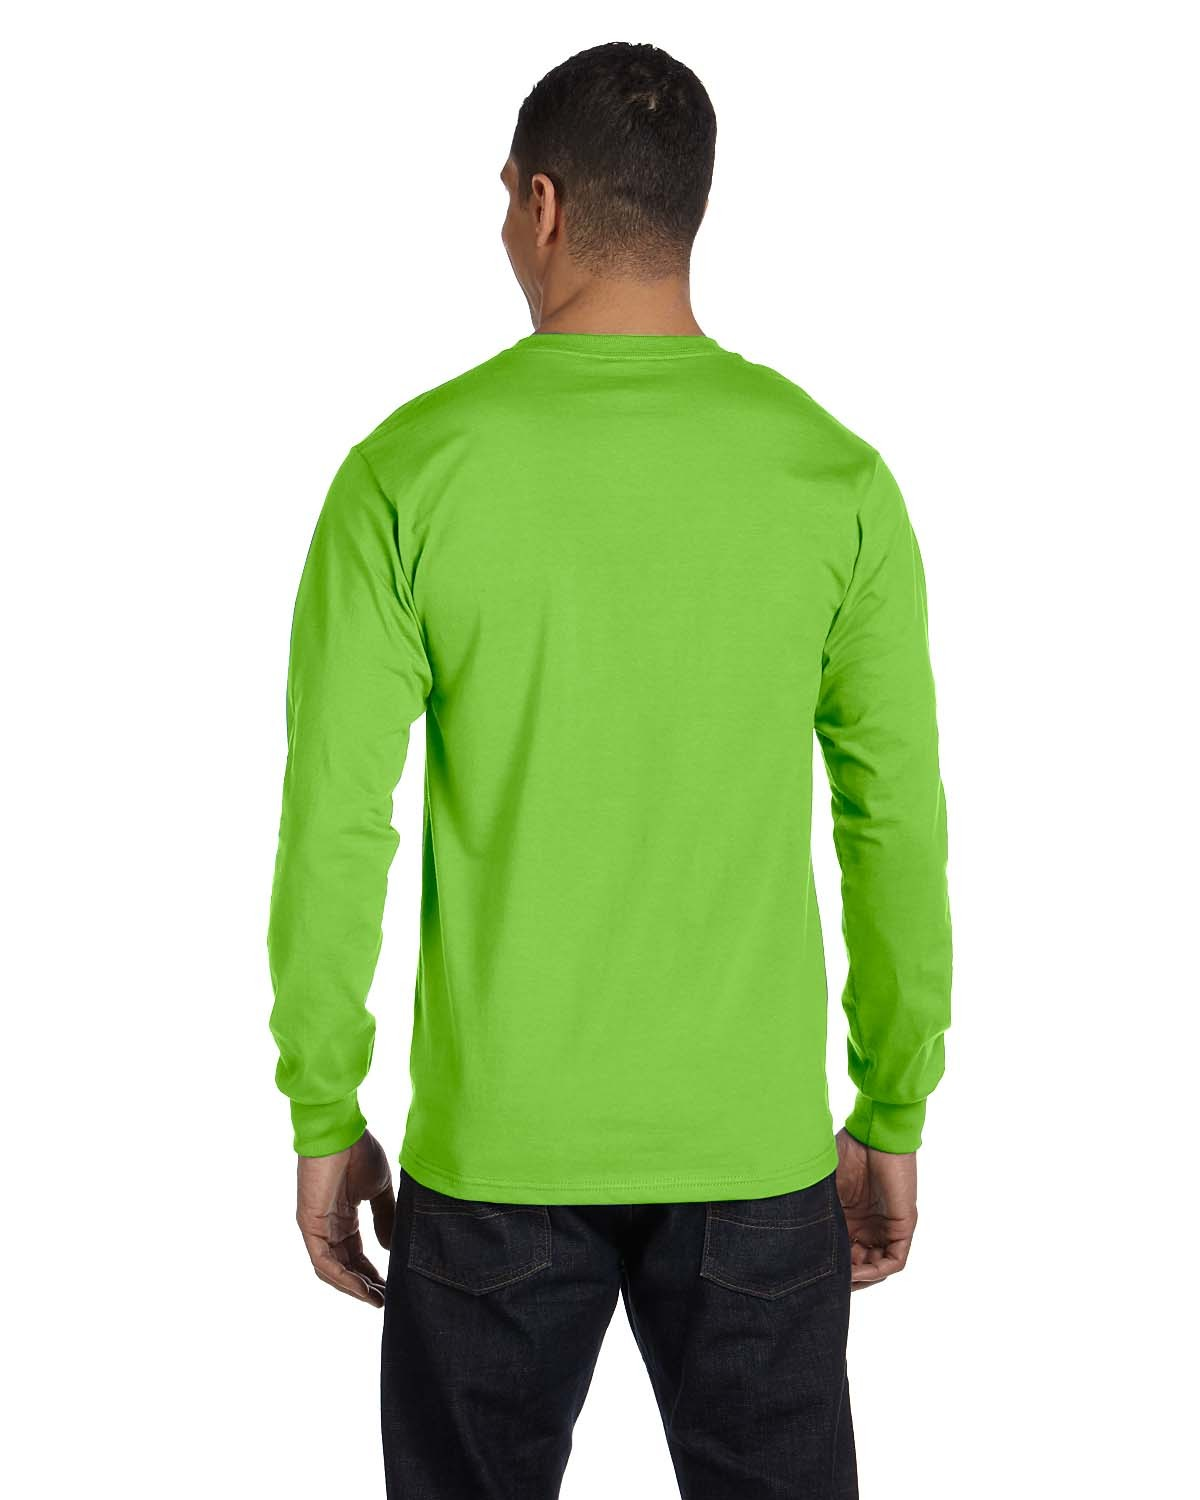 5186 Hanes LIME